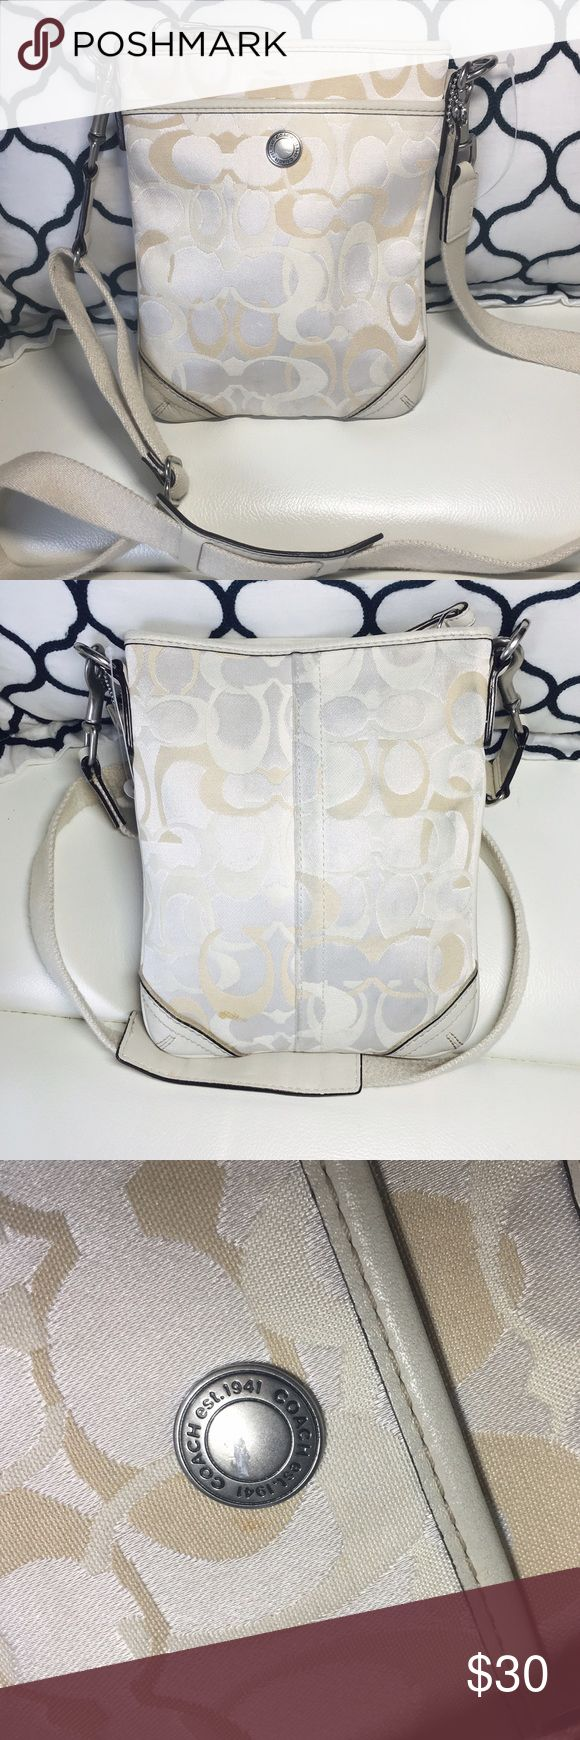 AUTHENTIC COACH SWINGPACK CROSSBODY-10148 AUTHENTIC COACH SWINGPACK CROSSBODY-10148 In good condition some signs of wear in the back as shown in pics Coach Bags Crossbody Bags